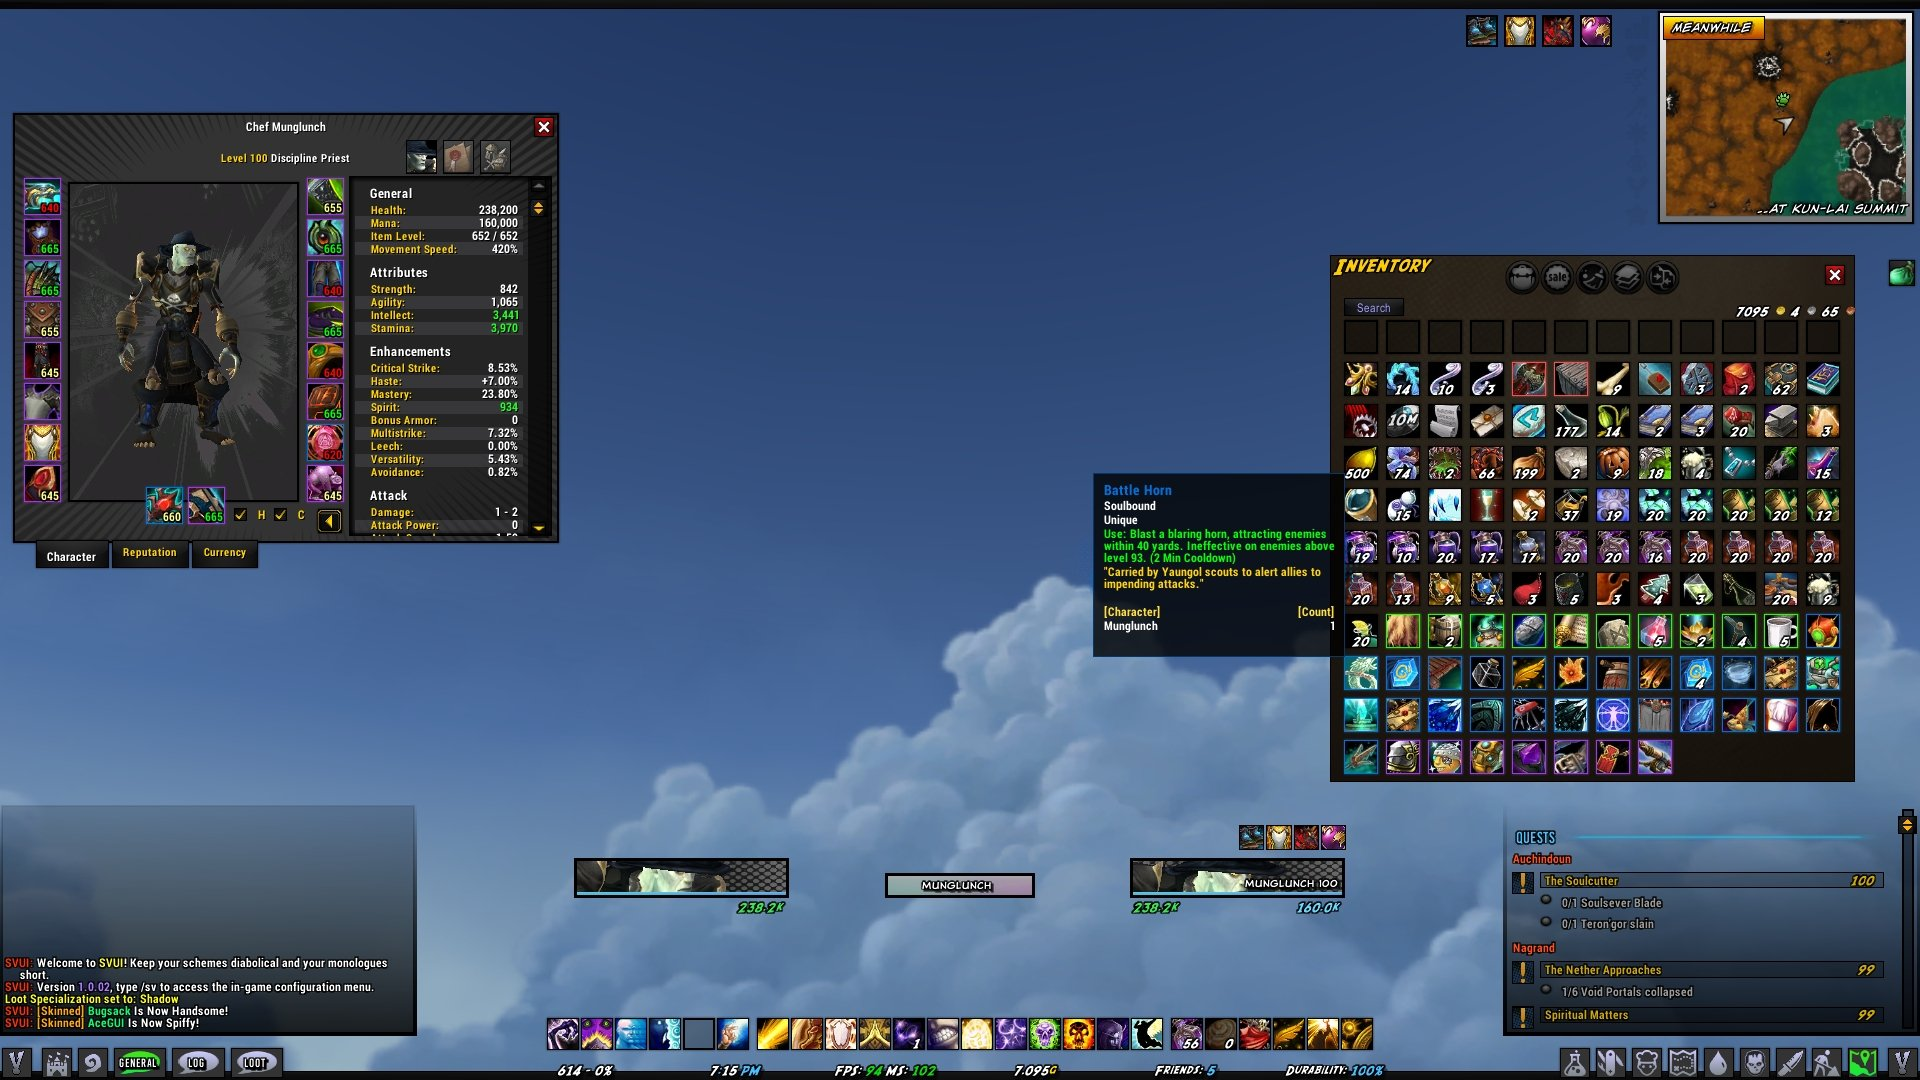 SuperVillain UI : Suites : World of Warcraft AddOns